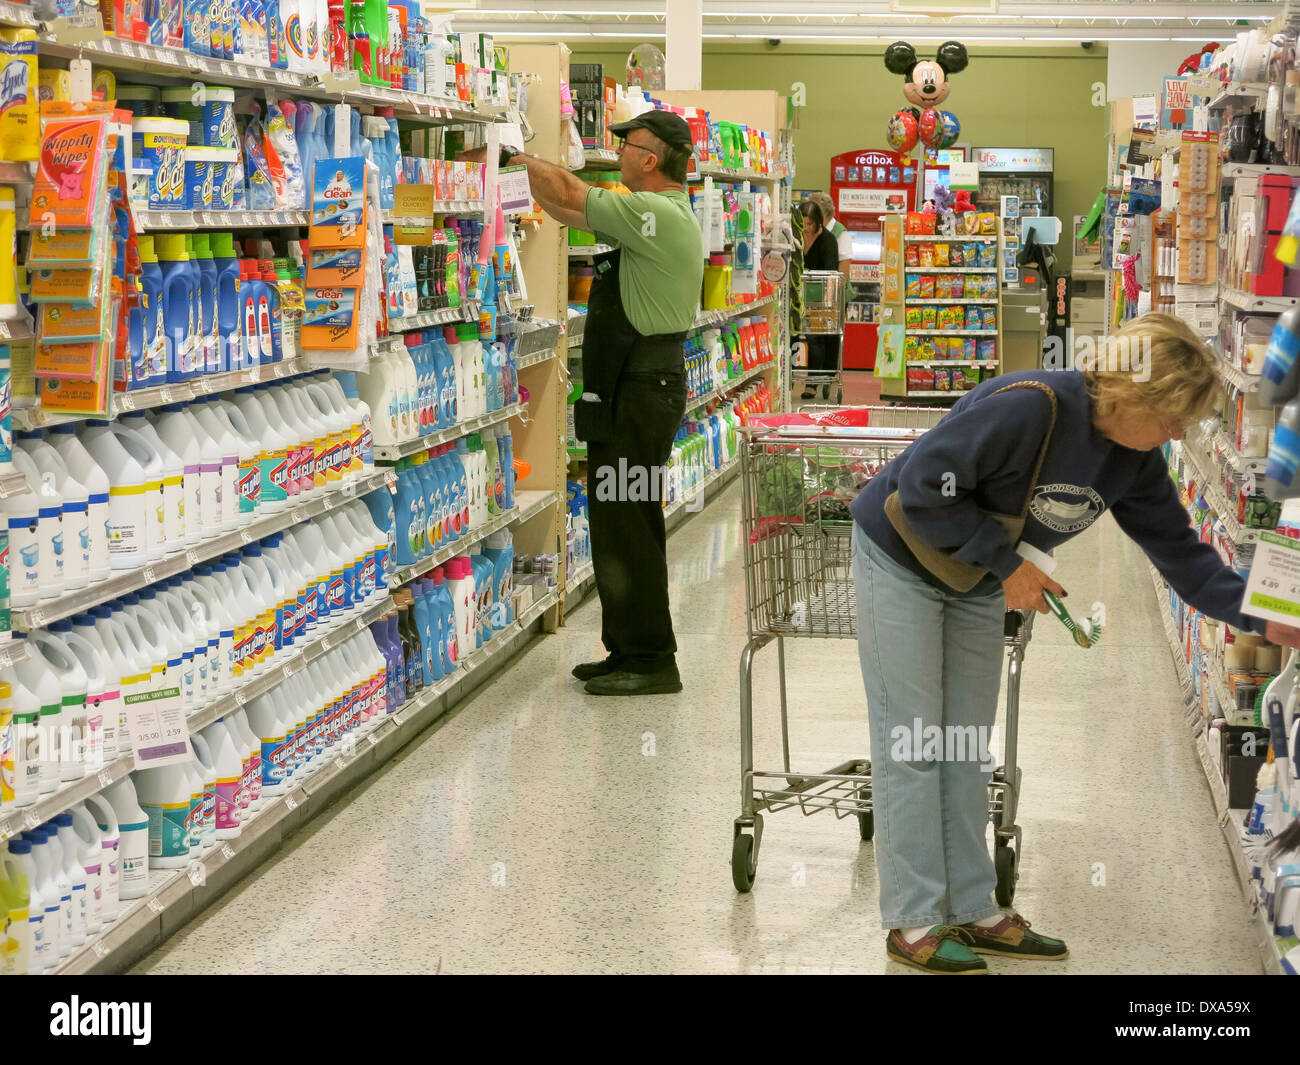 Employee Stocking Shelves and Woman Shopping, Cleaning Products ...